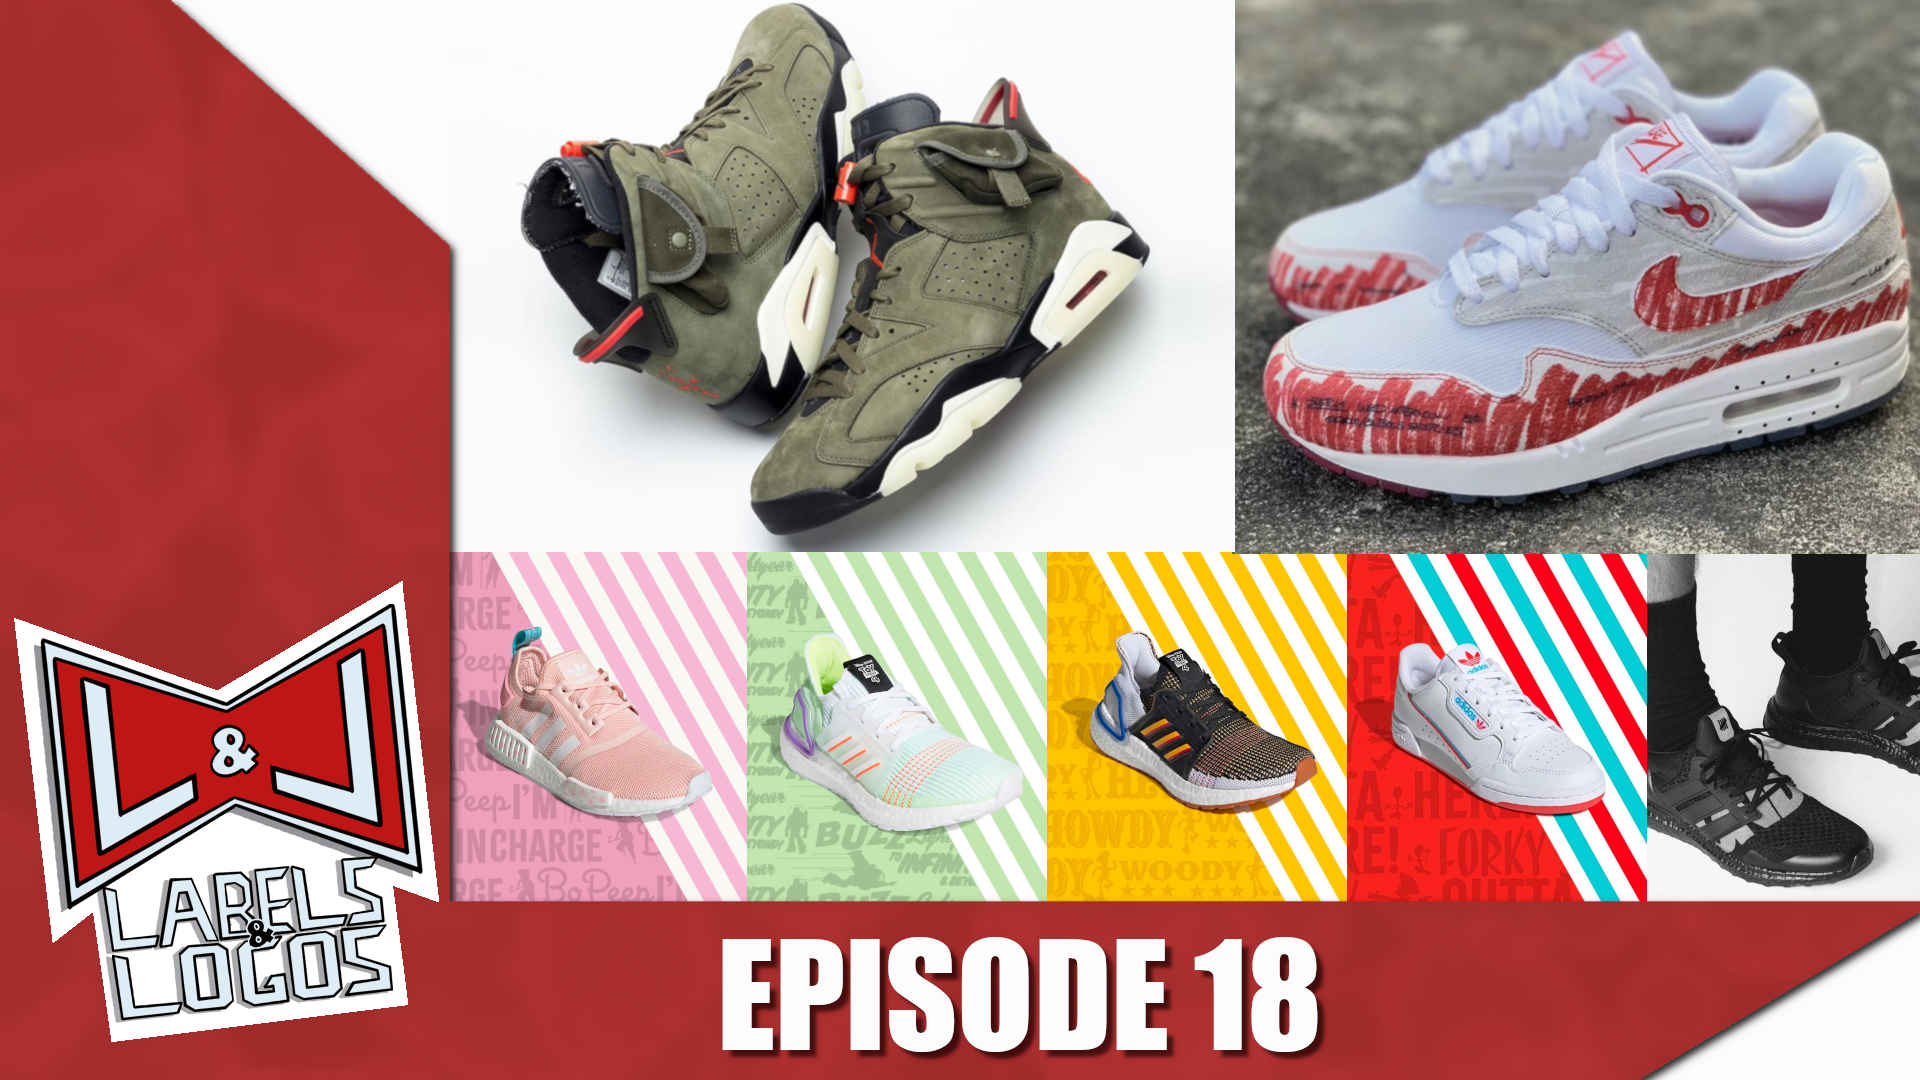 Labels & Logos - Episode 18 - Betsy Ross